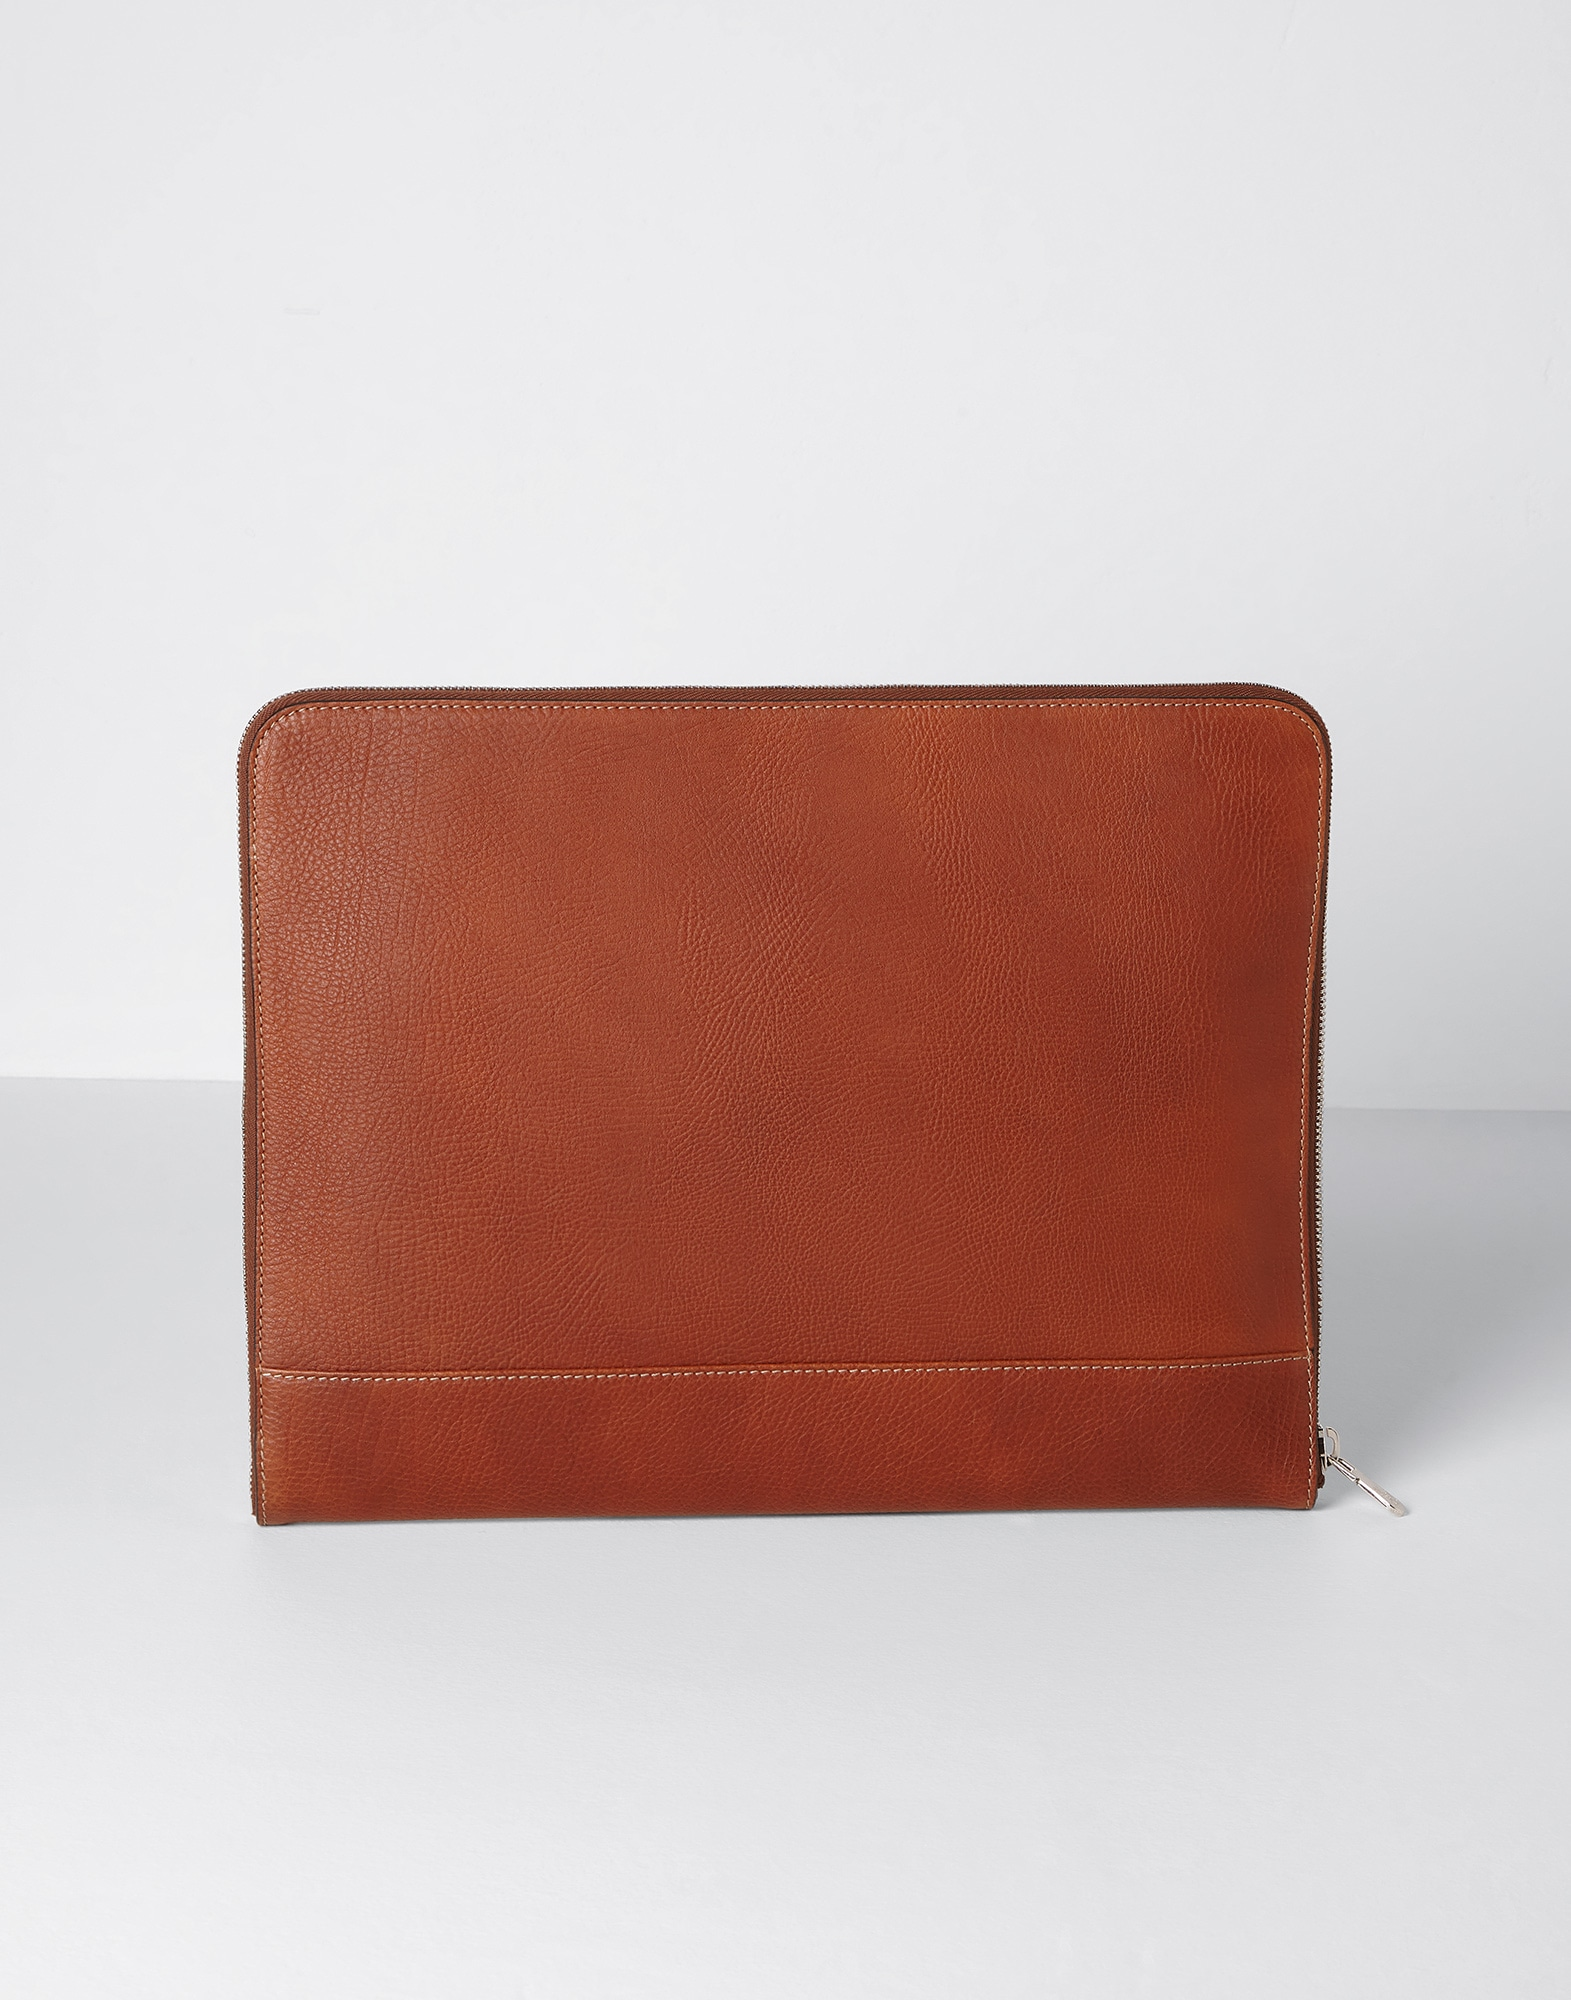 Document Holder Rum Man 1 - Brunello Cucinelli